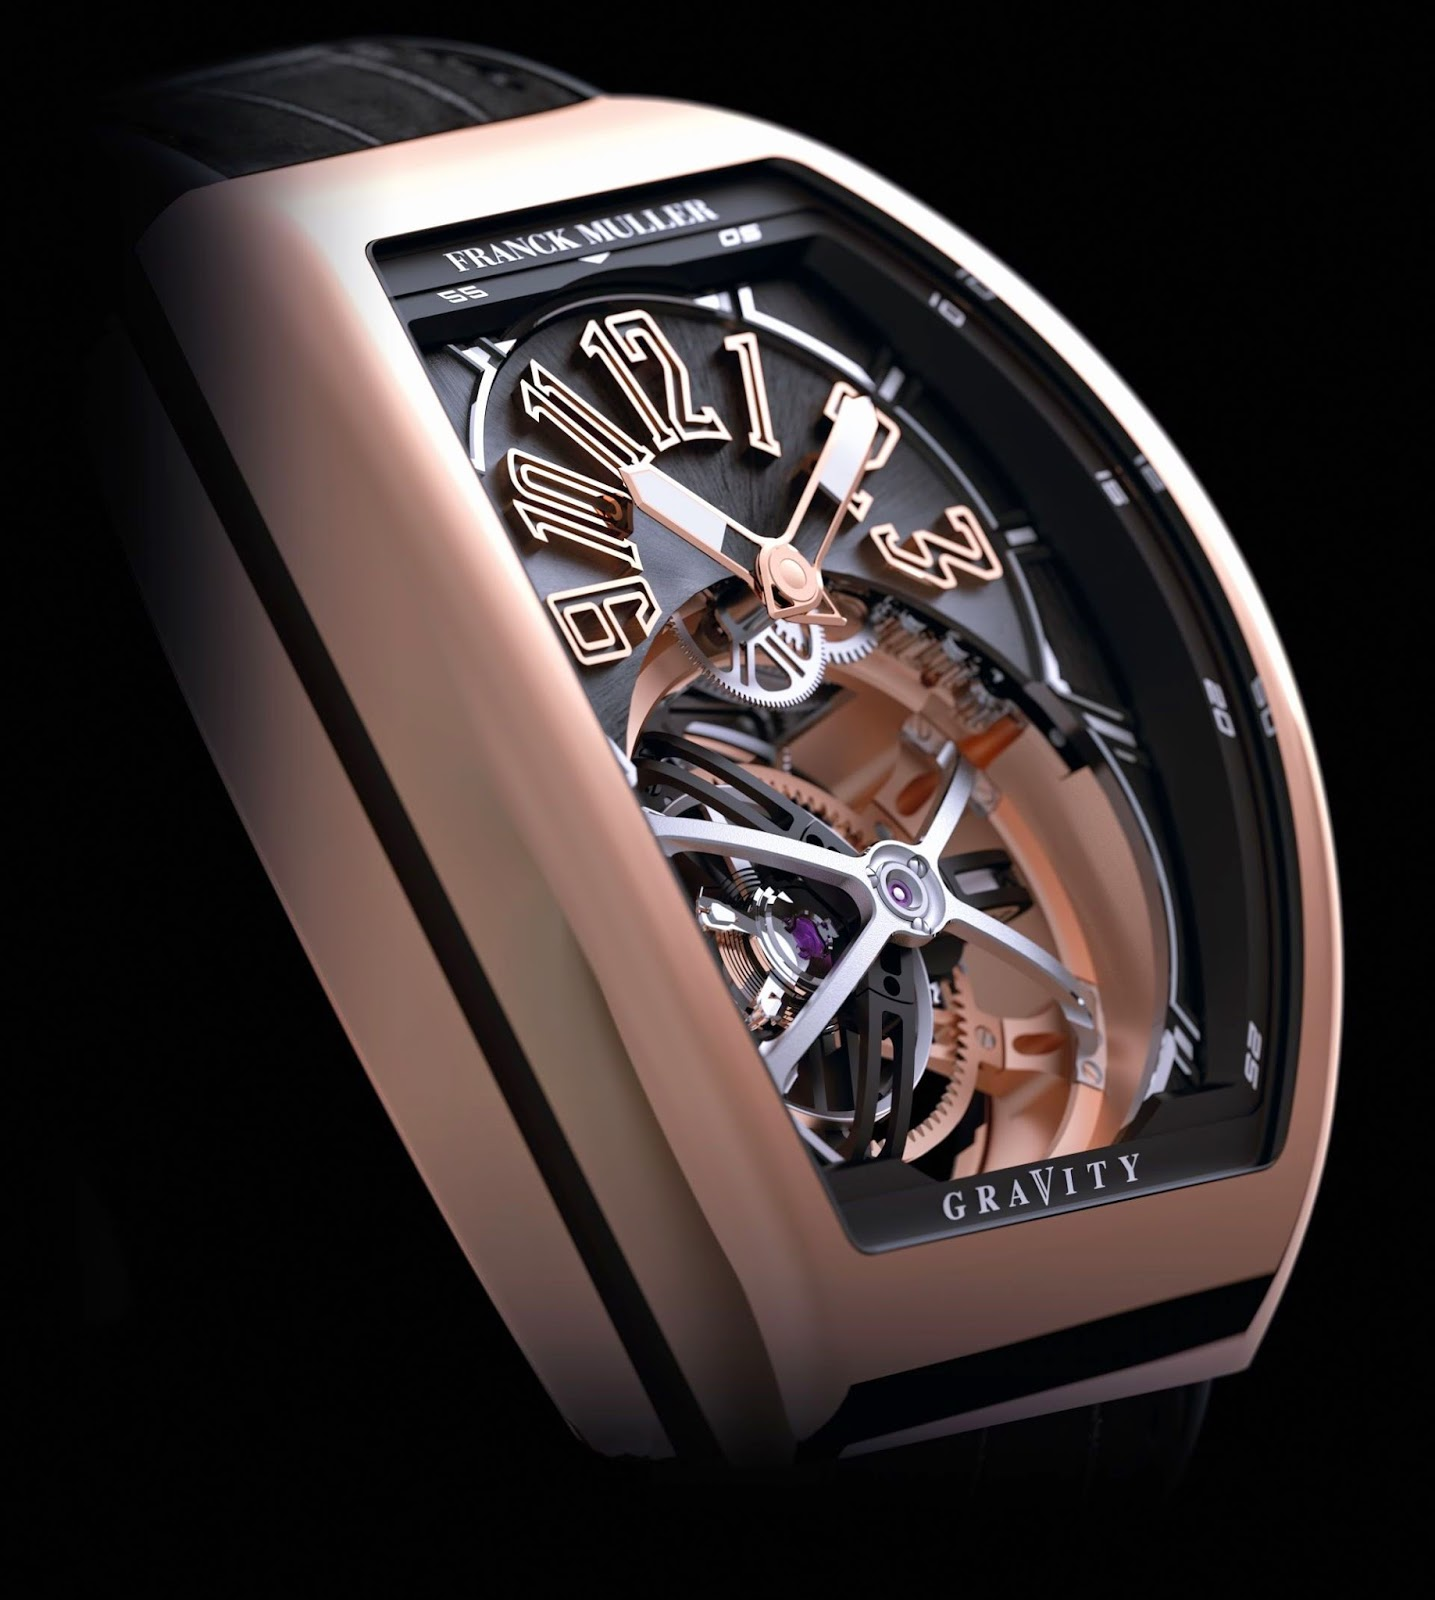 Franck Muller Vanguard Gravity tourbillon replica